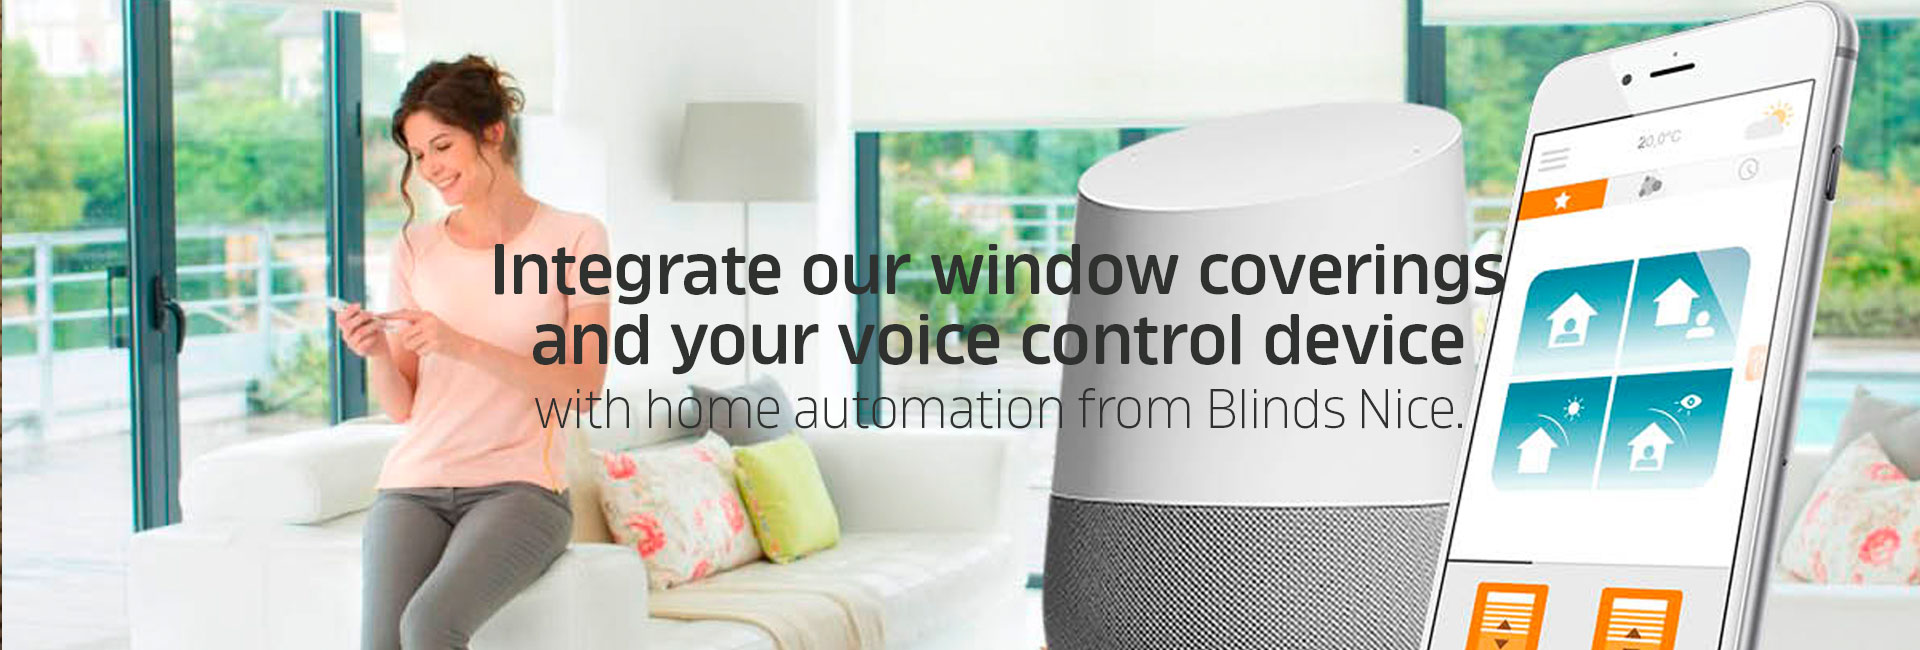 FC1370_1920x650px_Slider-home-automation